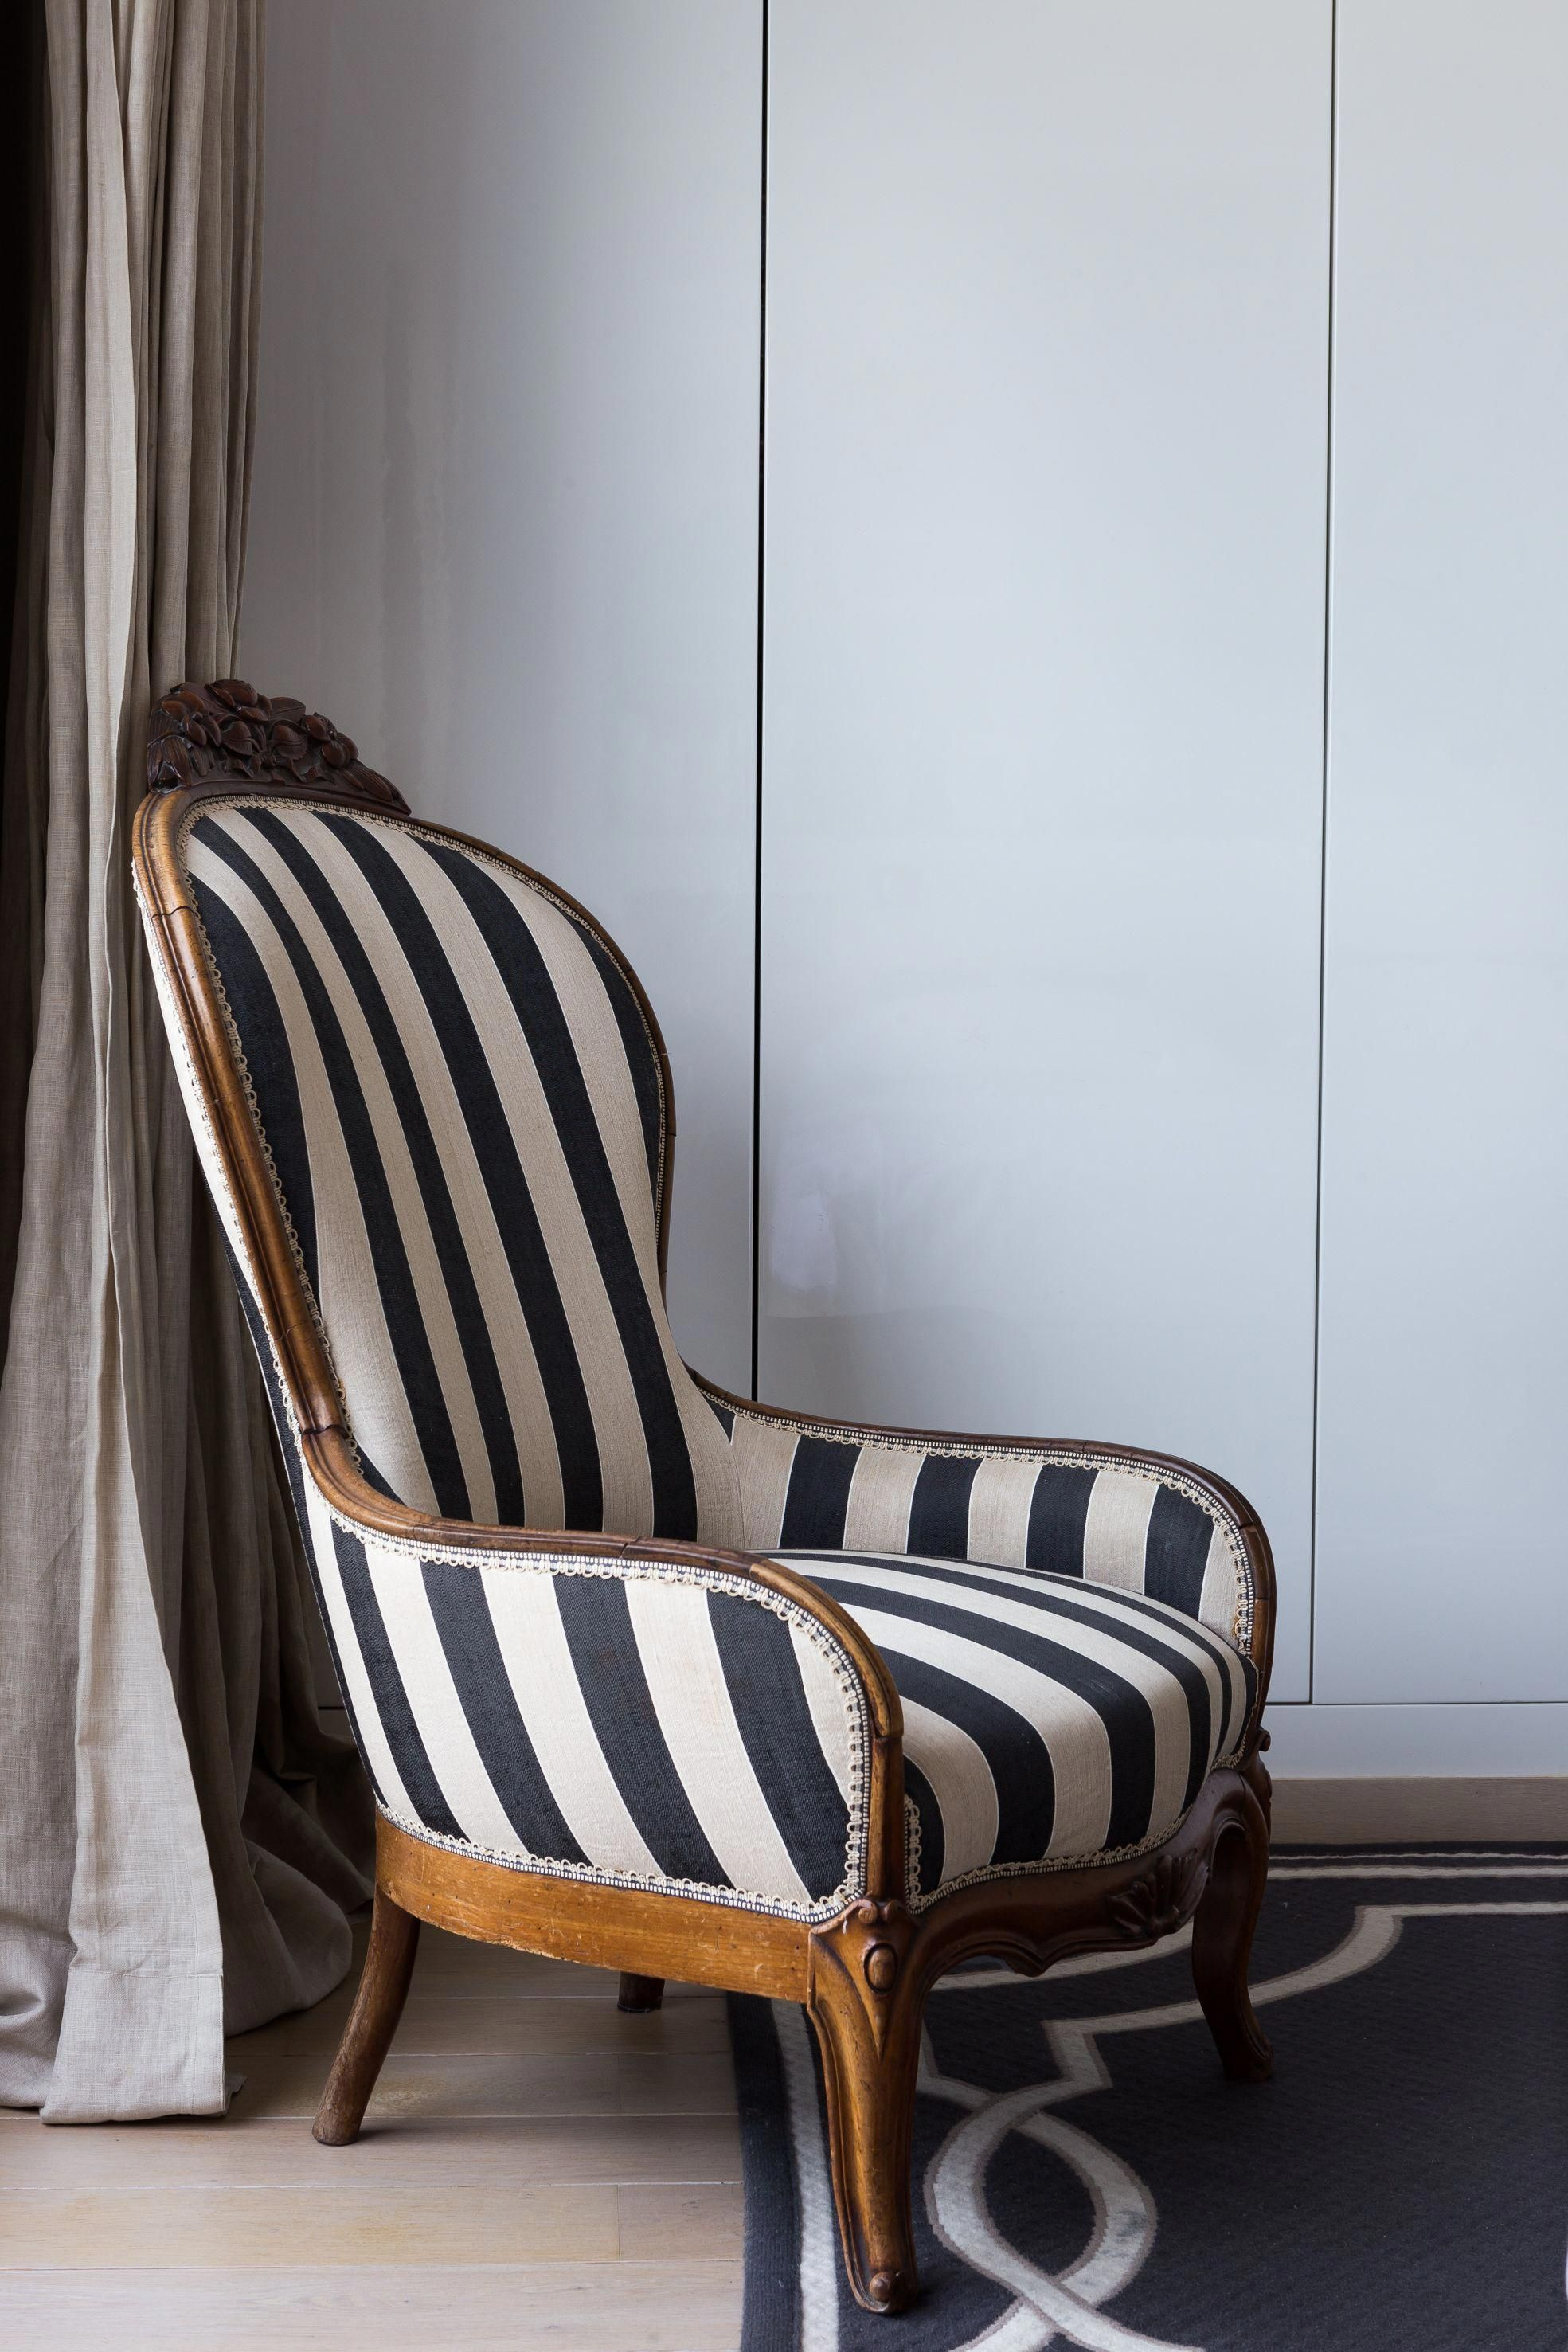 Teal Accent Chairs In Living Room Midcenturyofficechairs Id 3774101663 Upholstered Chairs Reupholster Furniture Furniture #striped #living #room #chairs